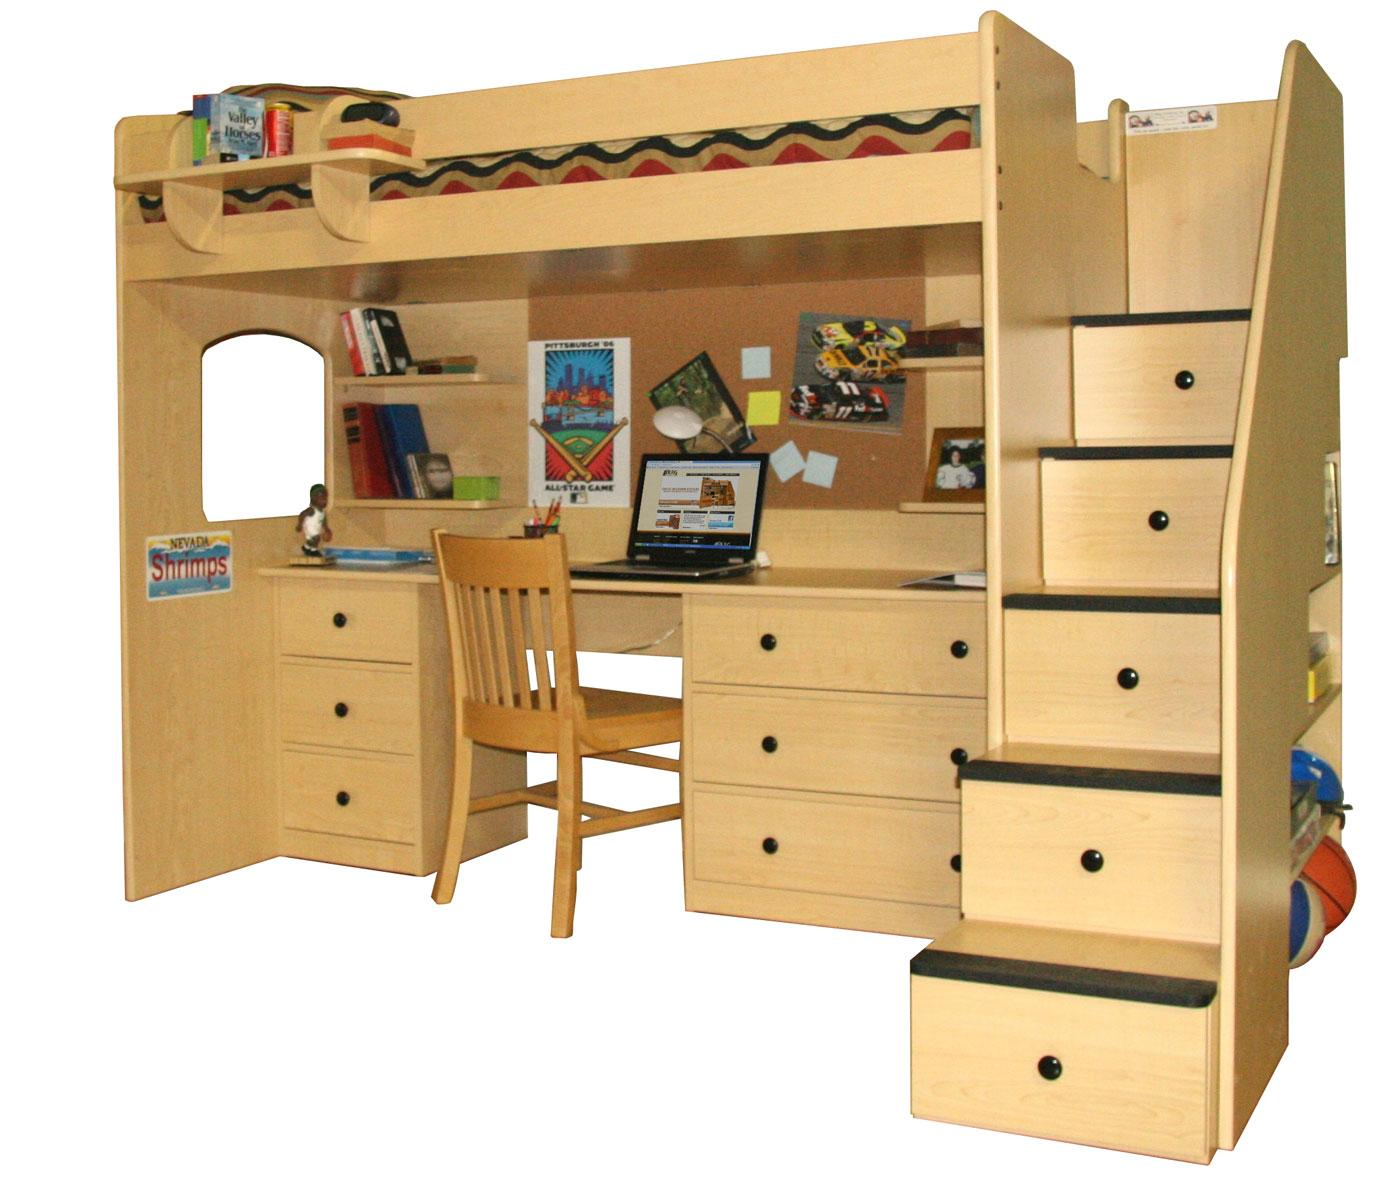 Bunk Bed Plans Free | BED PLANS DIY & BLUEPRINTS